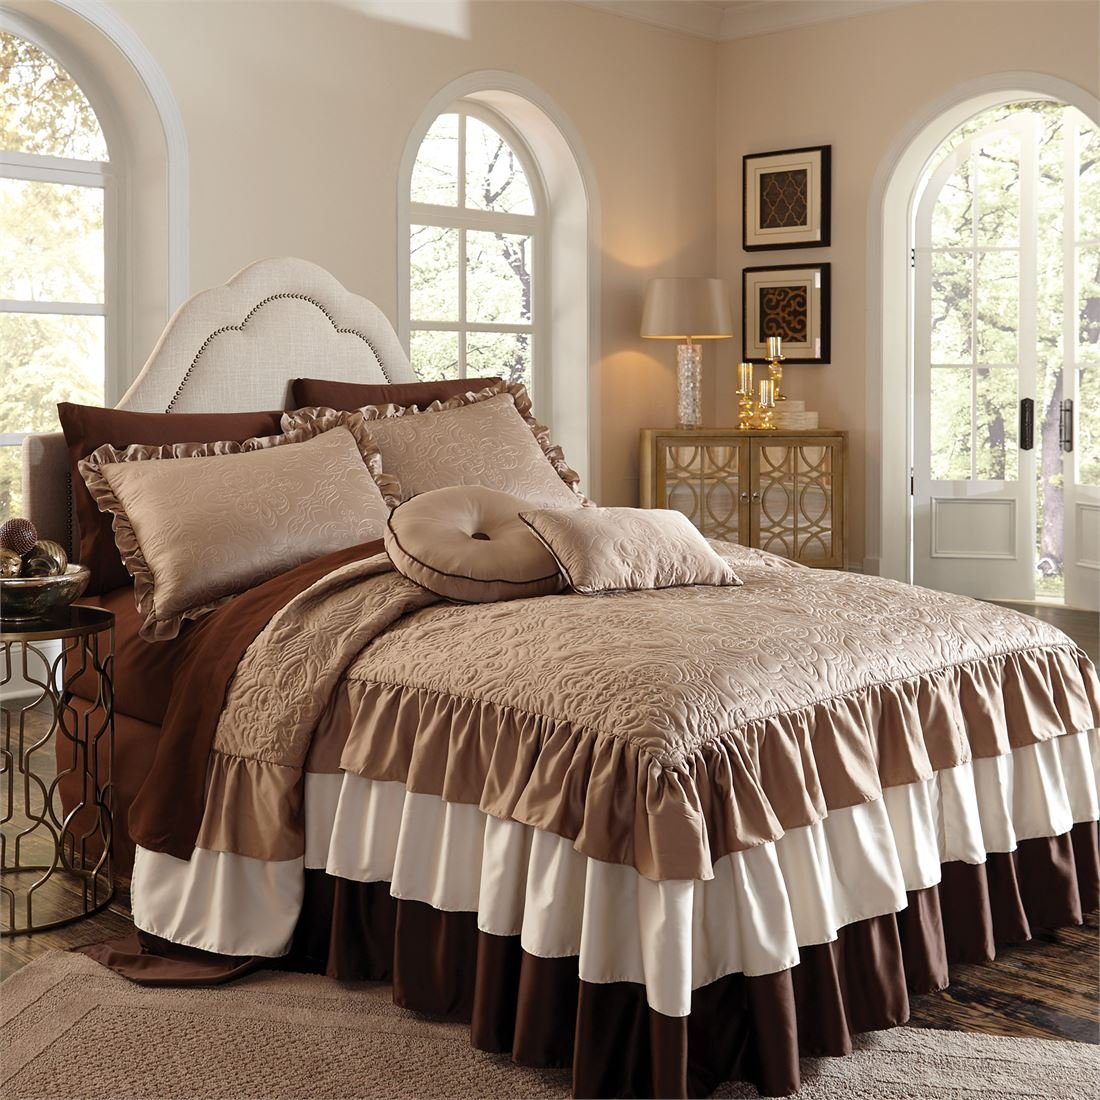 BrylaneHome Genevieve Ruffle Bedspread (Ivory Taupe,Queen) by BrylaneHome